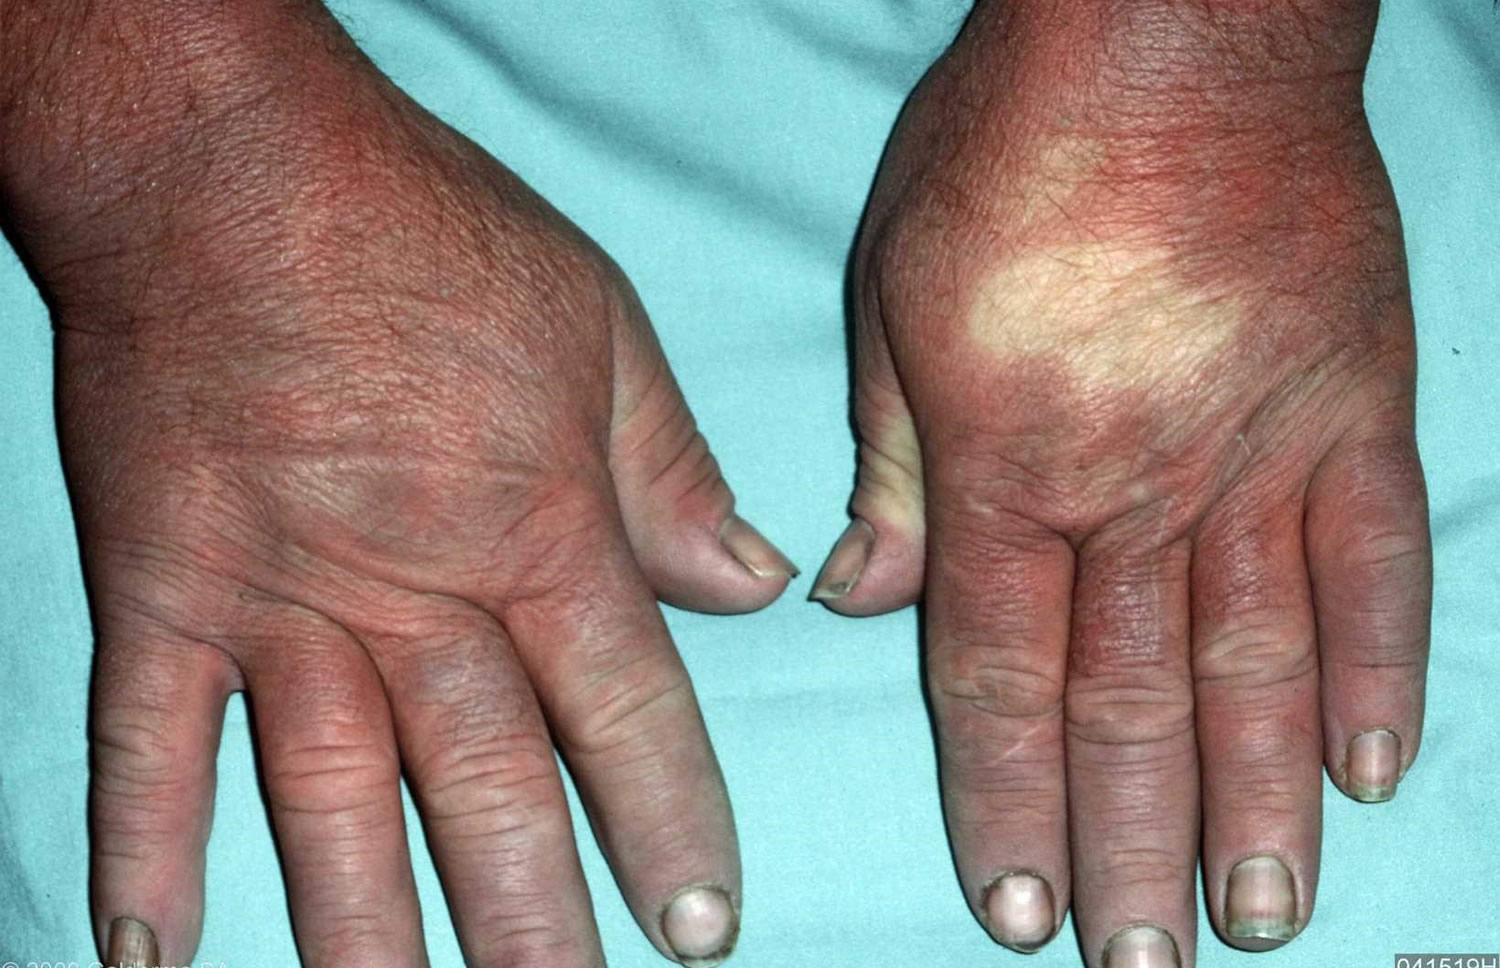 Raynaud's disease hands